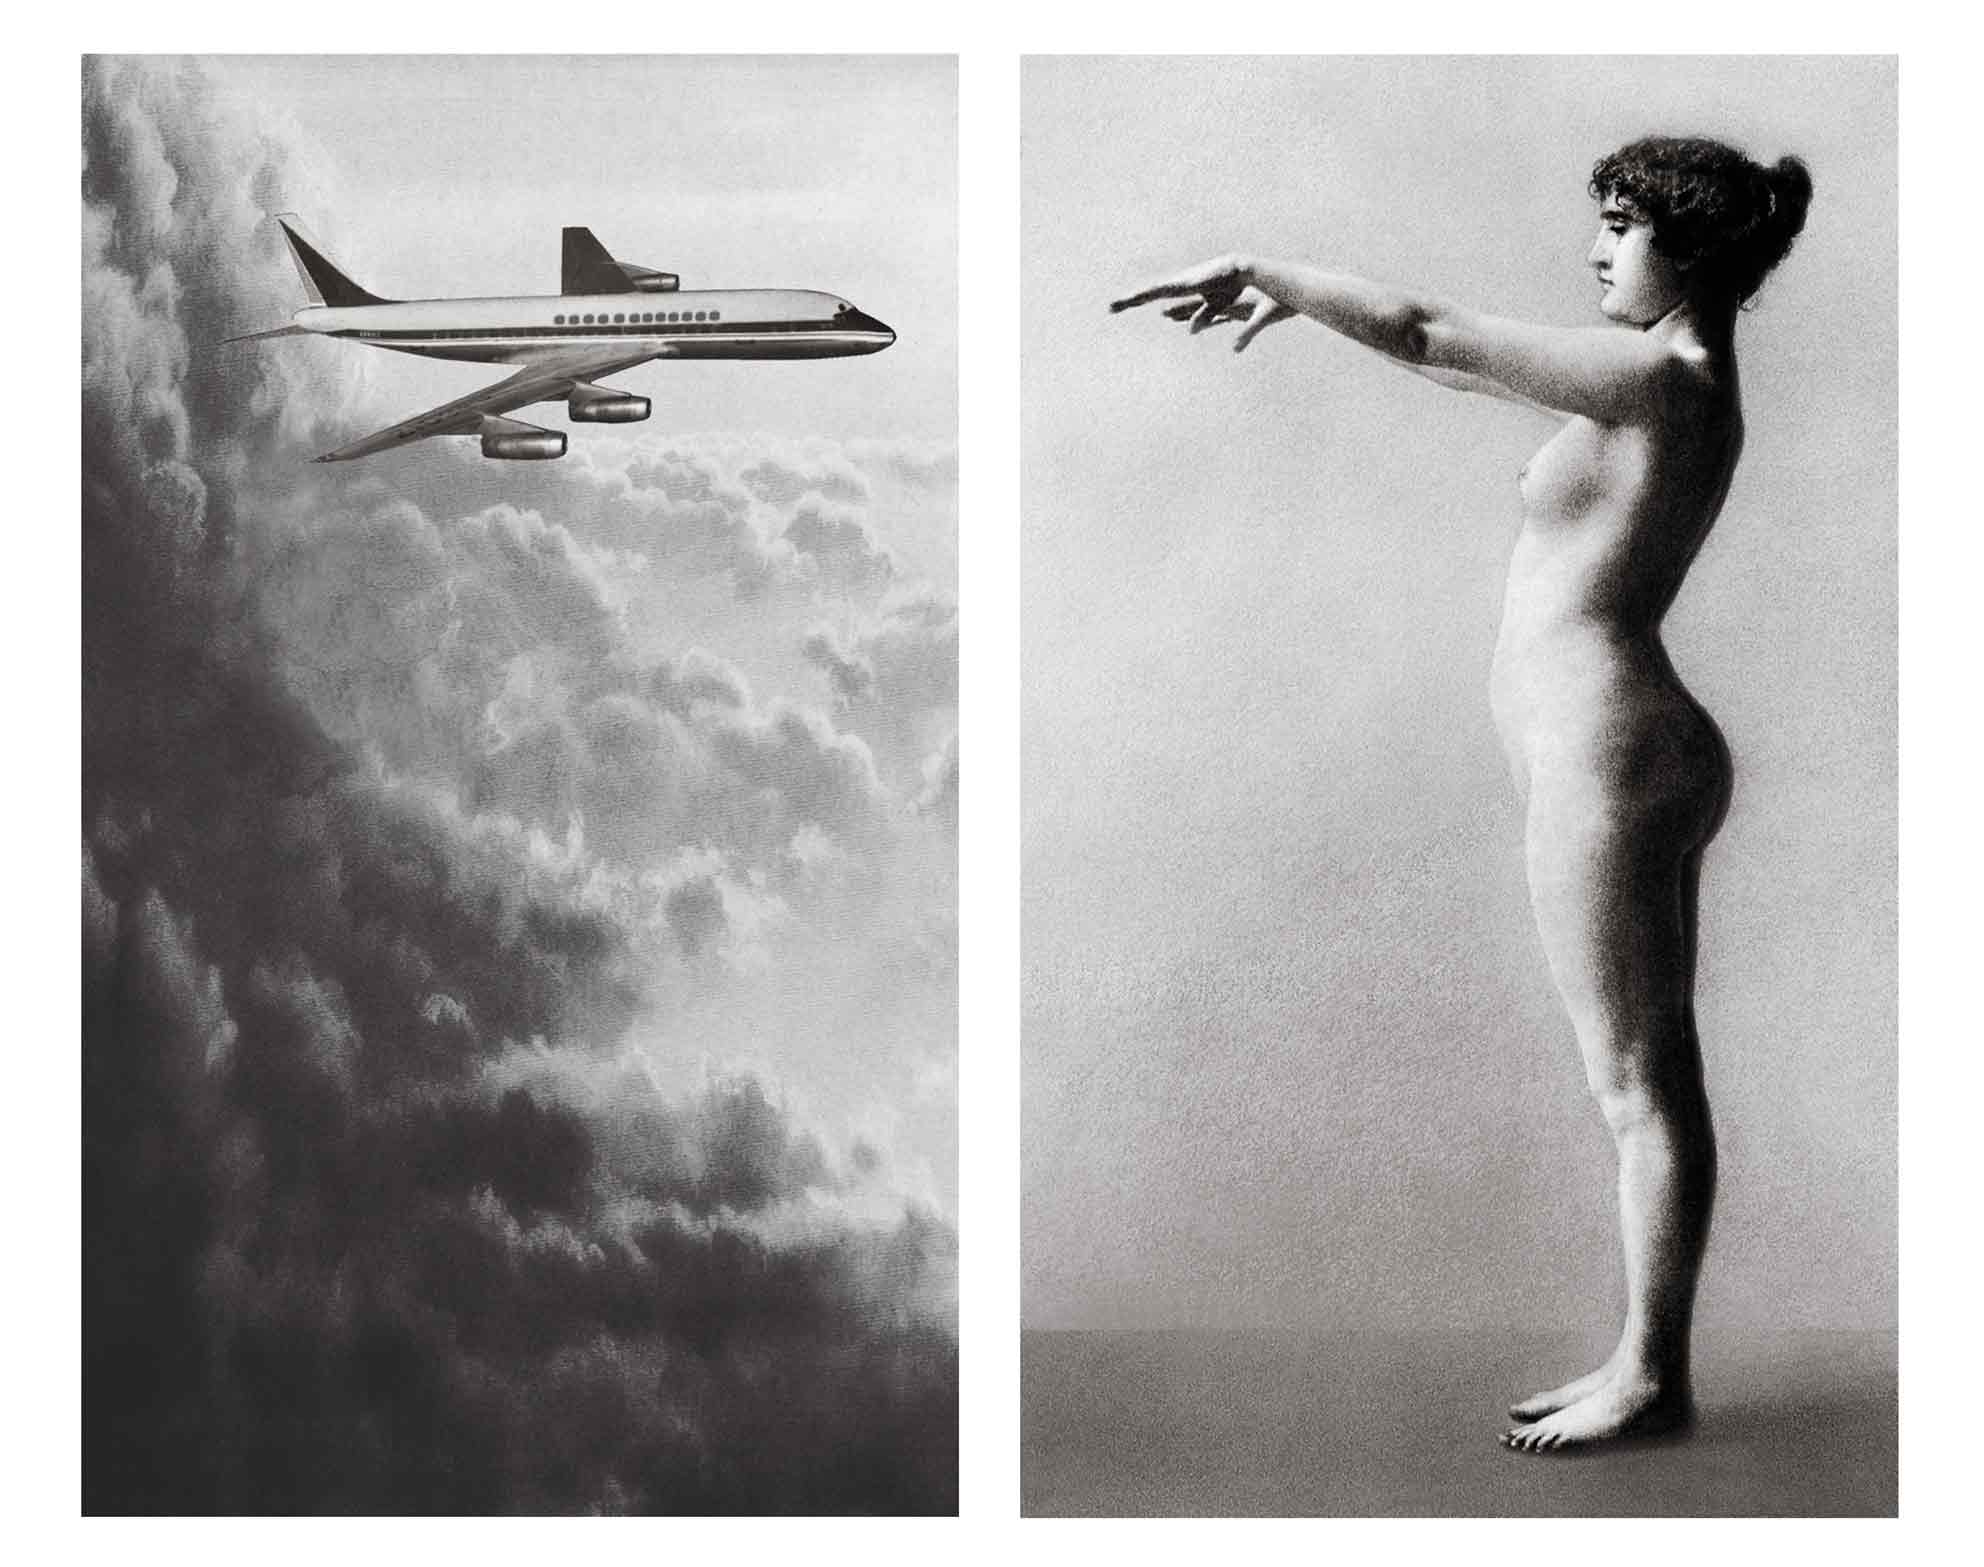 PAT BRASSINGTON   Home and Away  2016 Pigment print Diptych (each 133 x 80 cm)